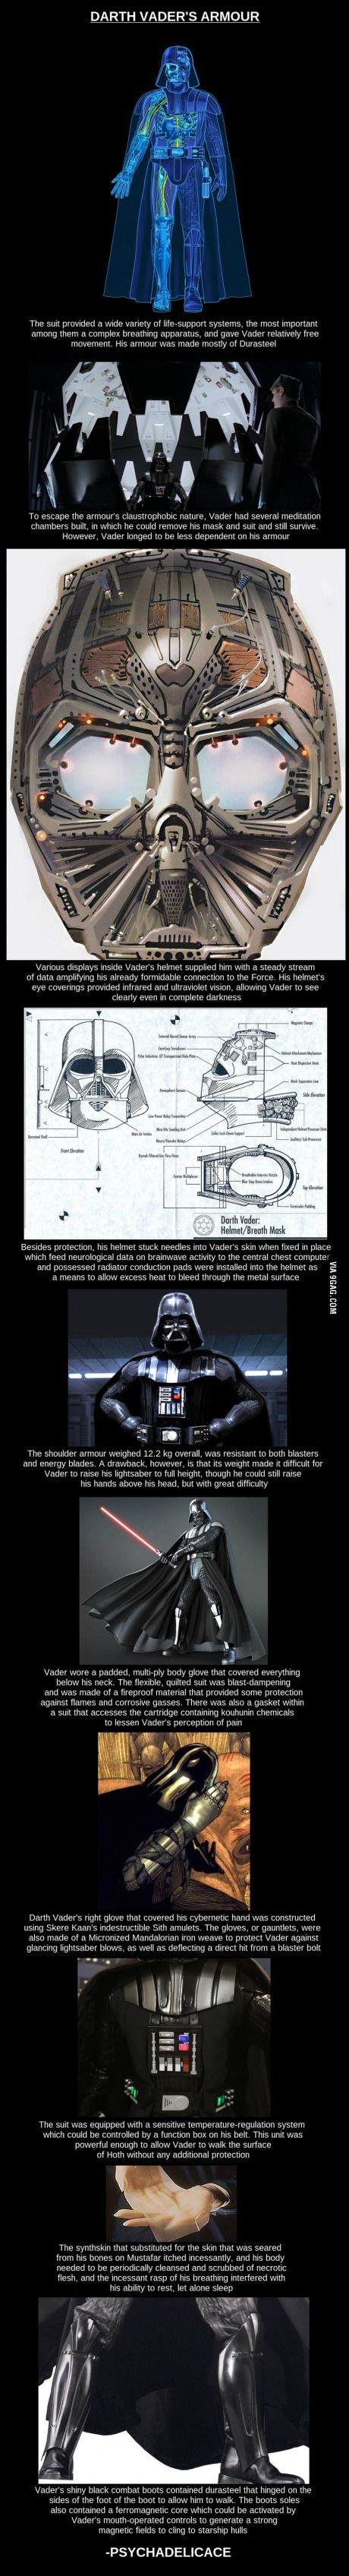 Darth Vader's Armor More like this on the greatest Star Wars Page in the Galaxy! https://www.facebook.com/groups/912262928860966/